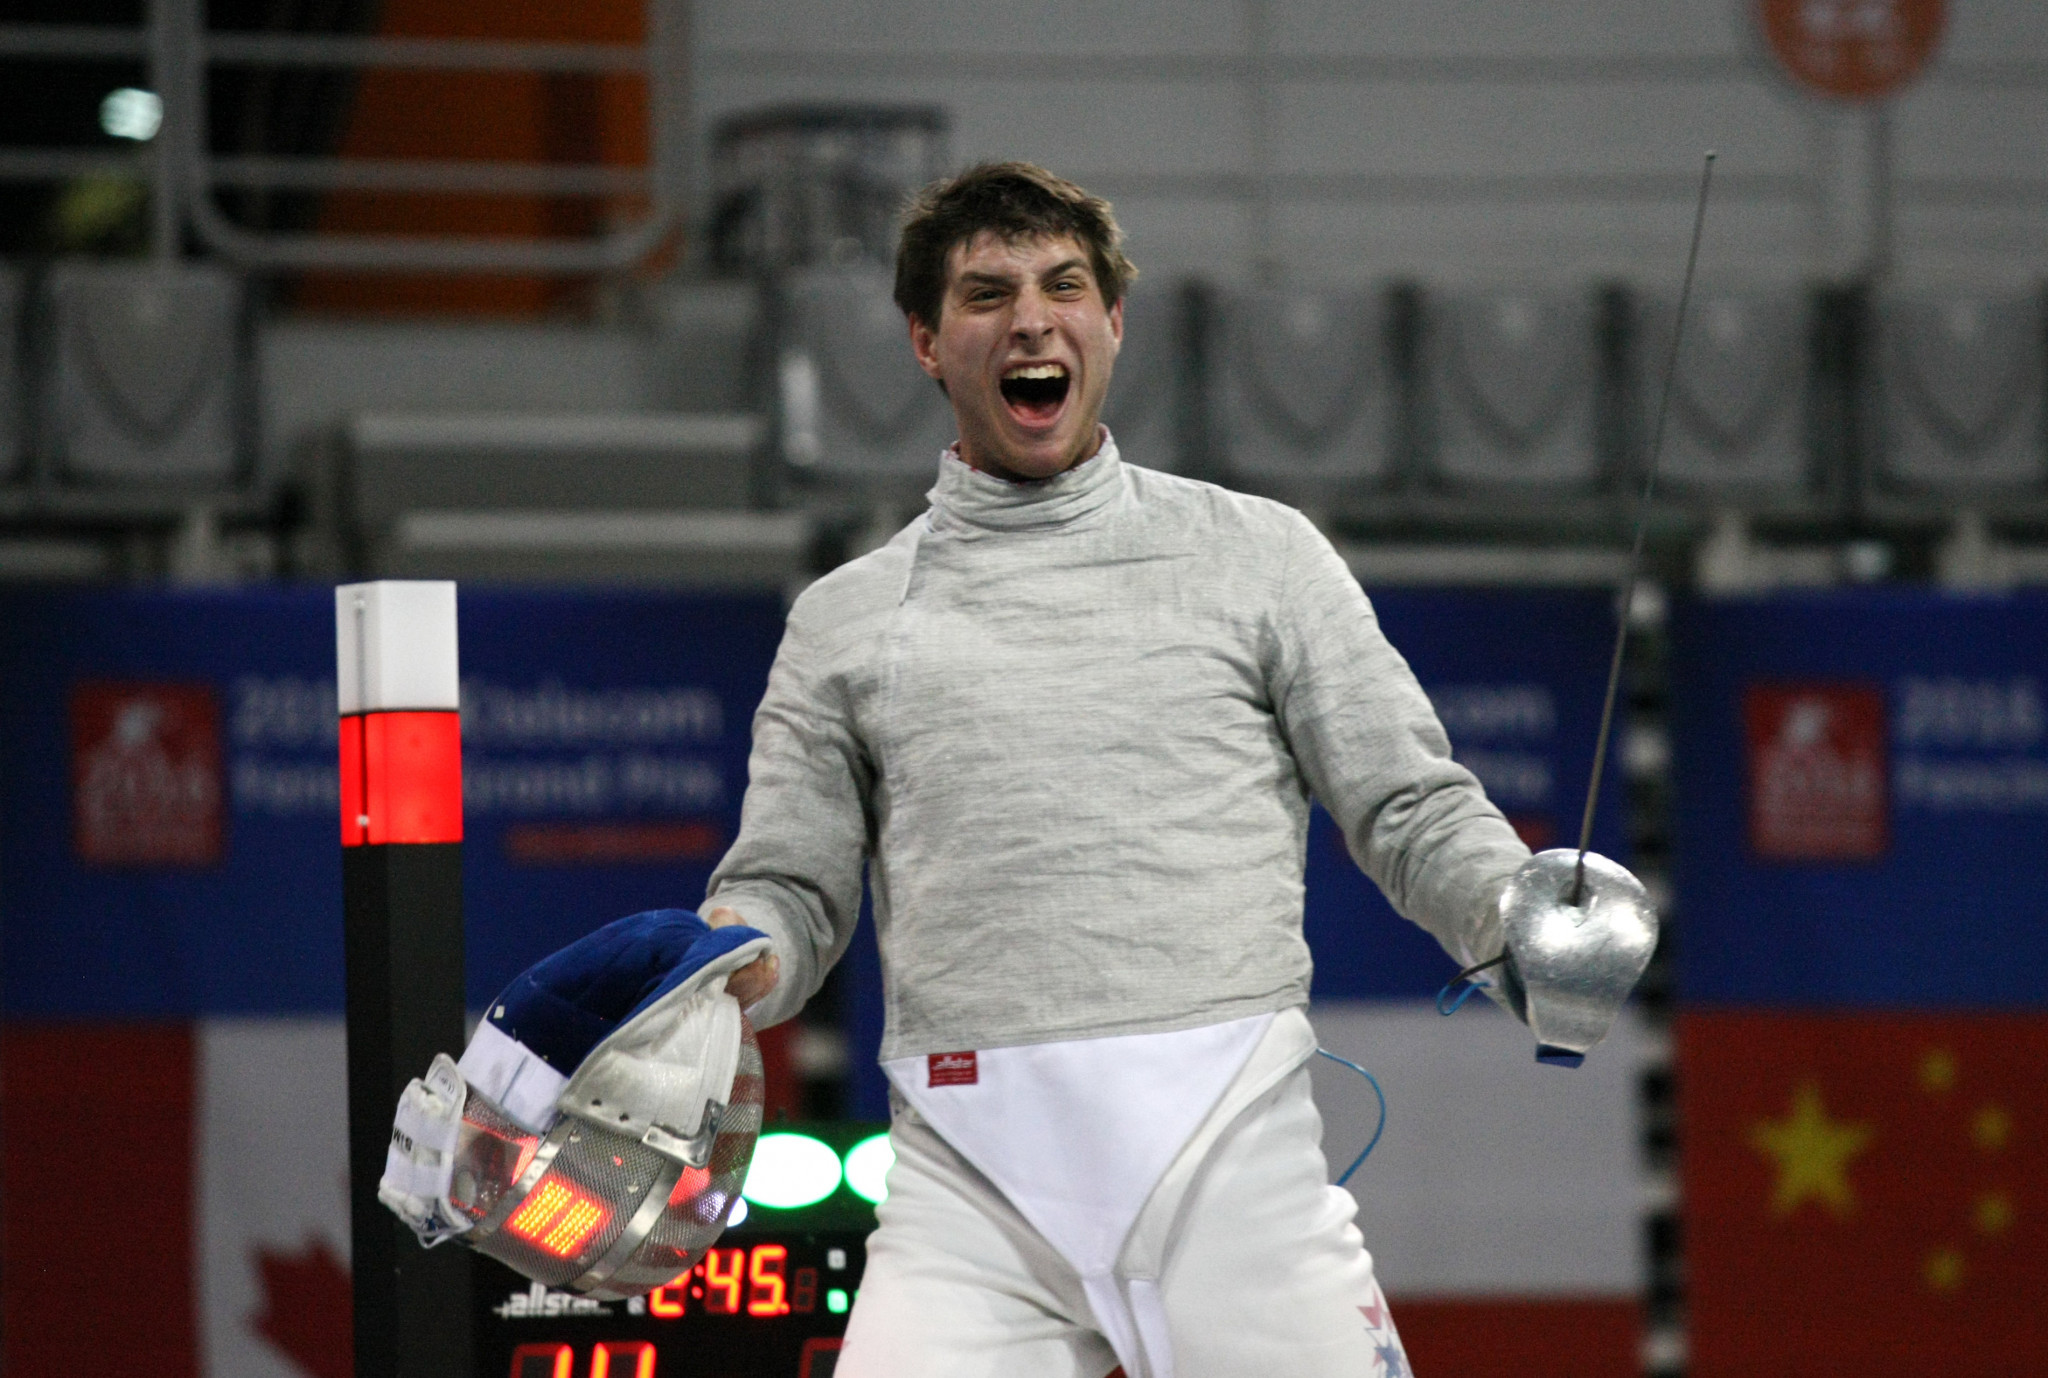 Dershwitz to head American challenge at Pan American Fencing Championships as country eyes more dominance